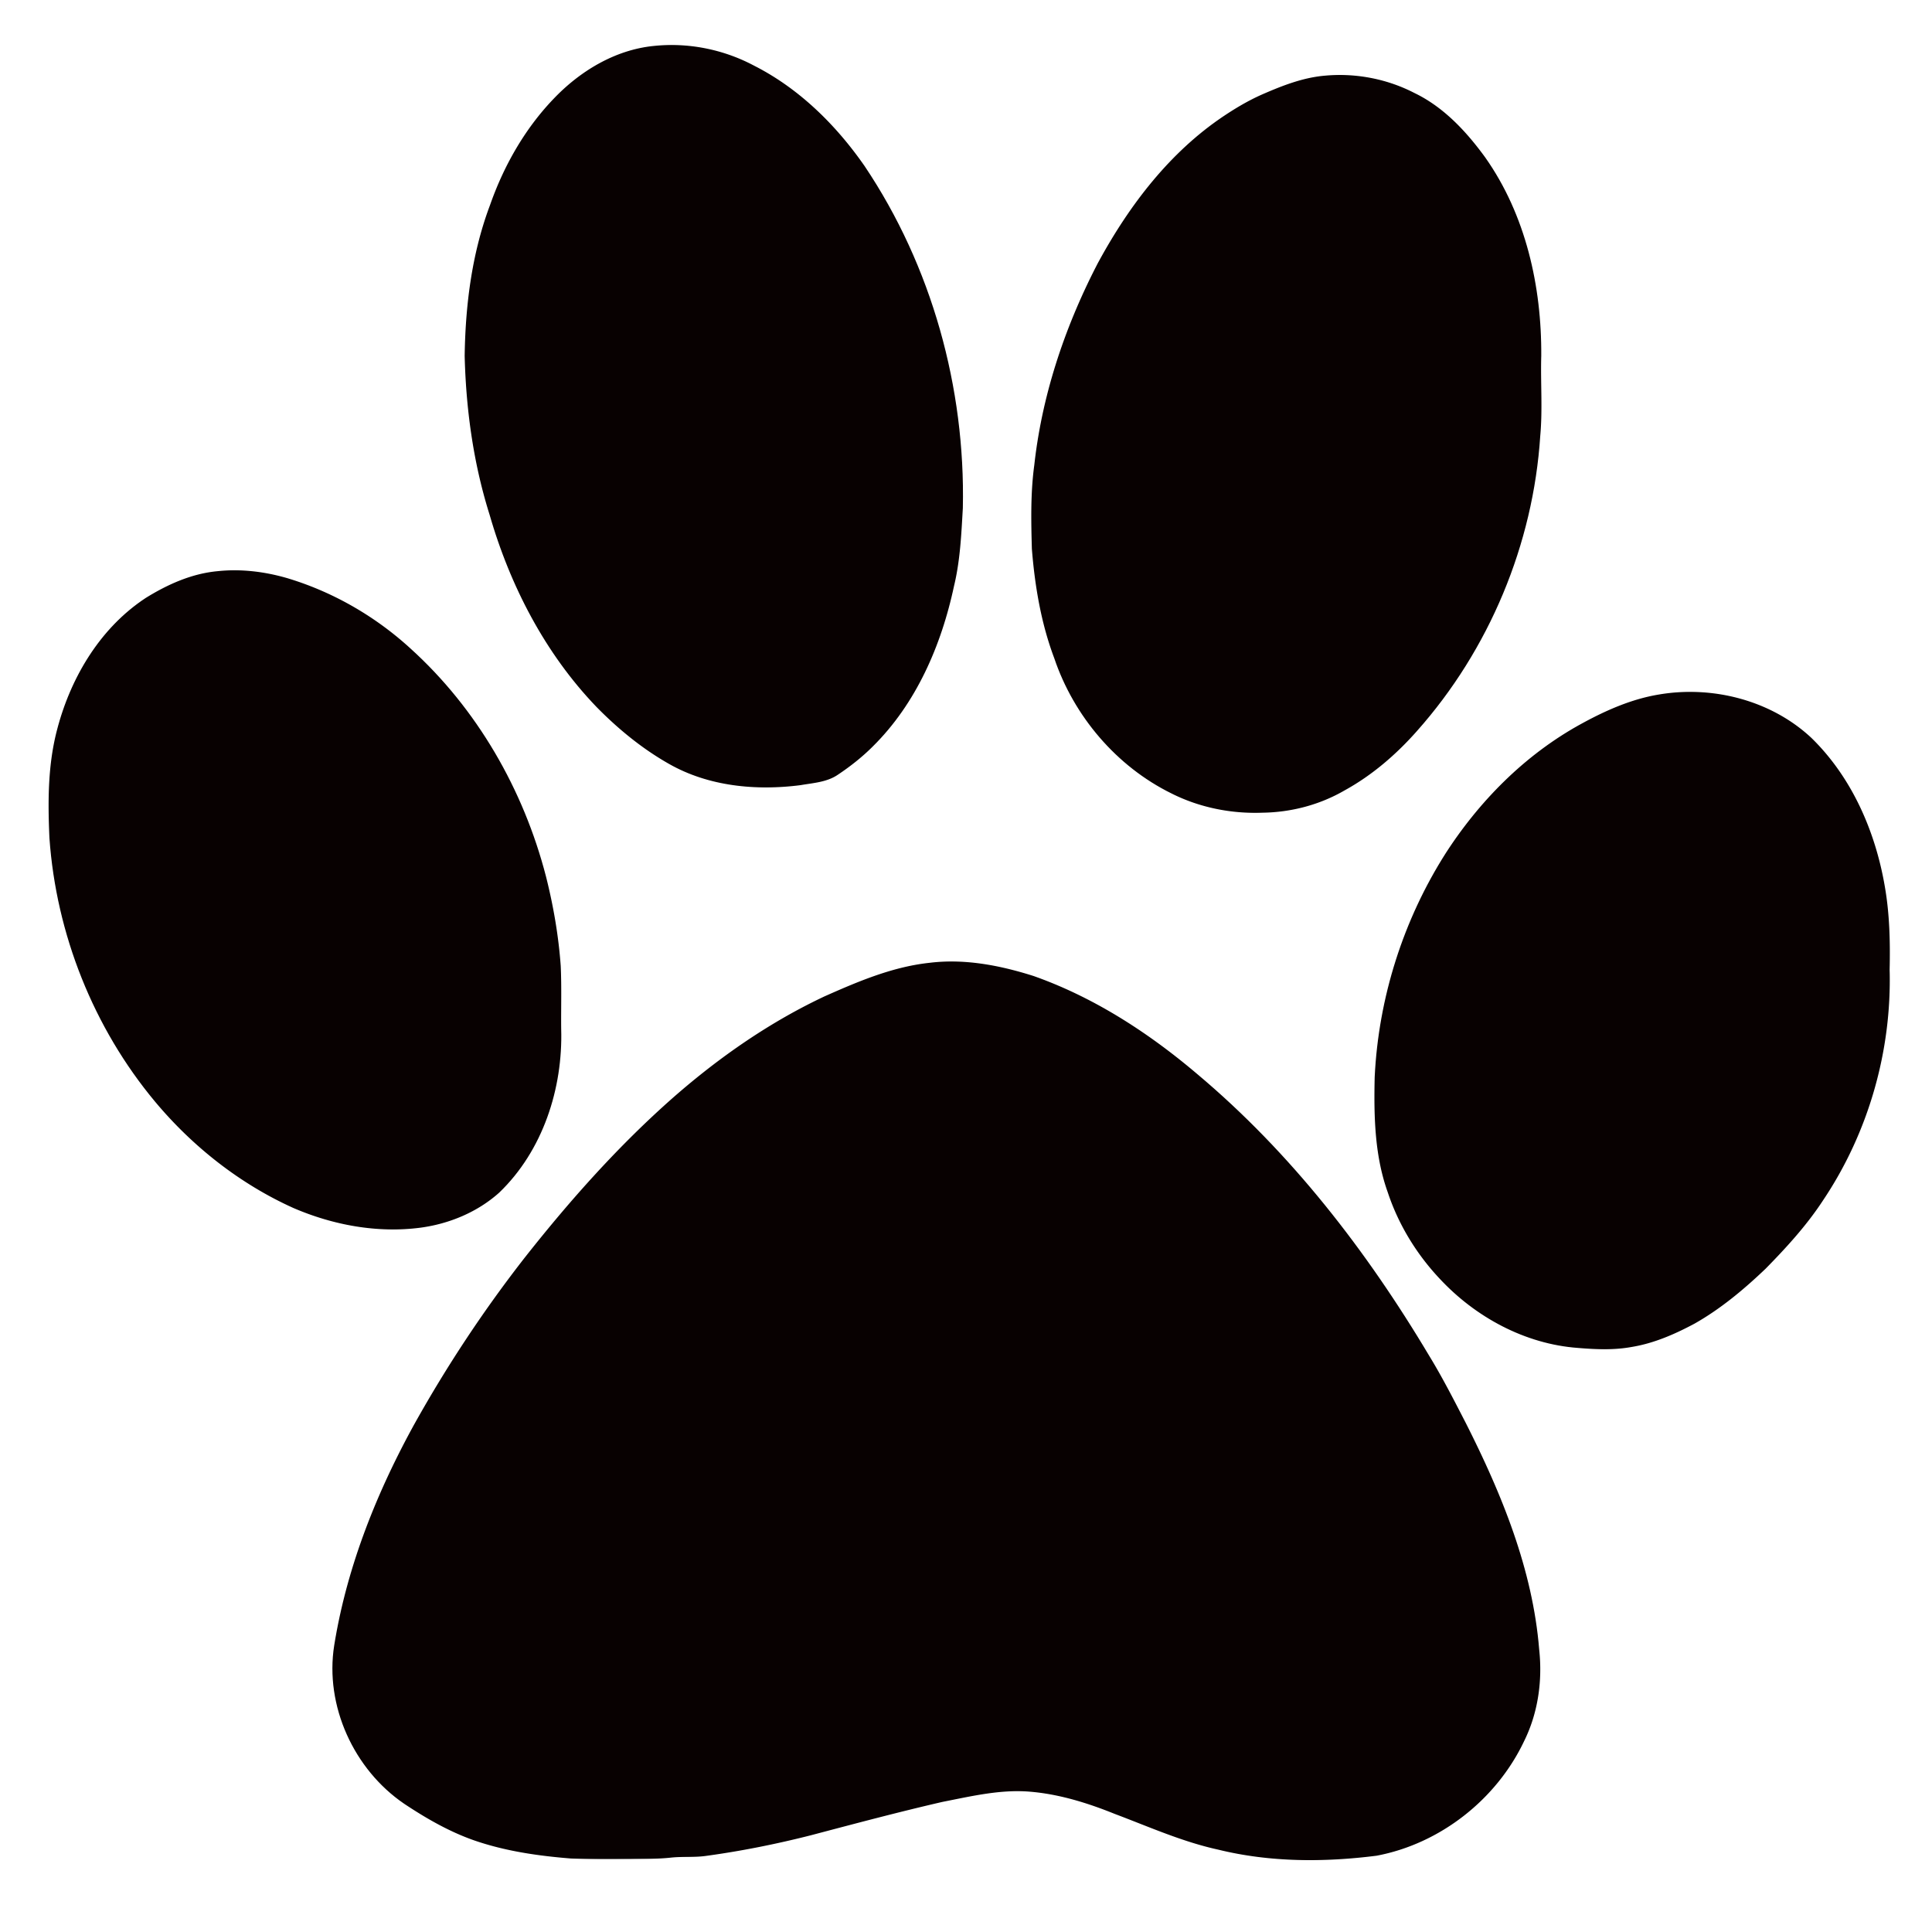 2500x2500 Dog Paws Clip Art